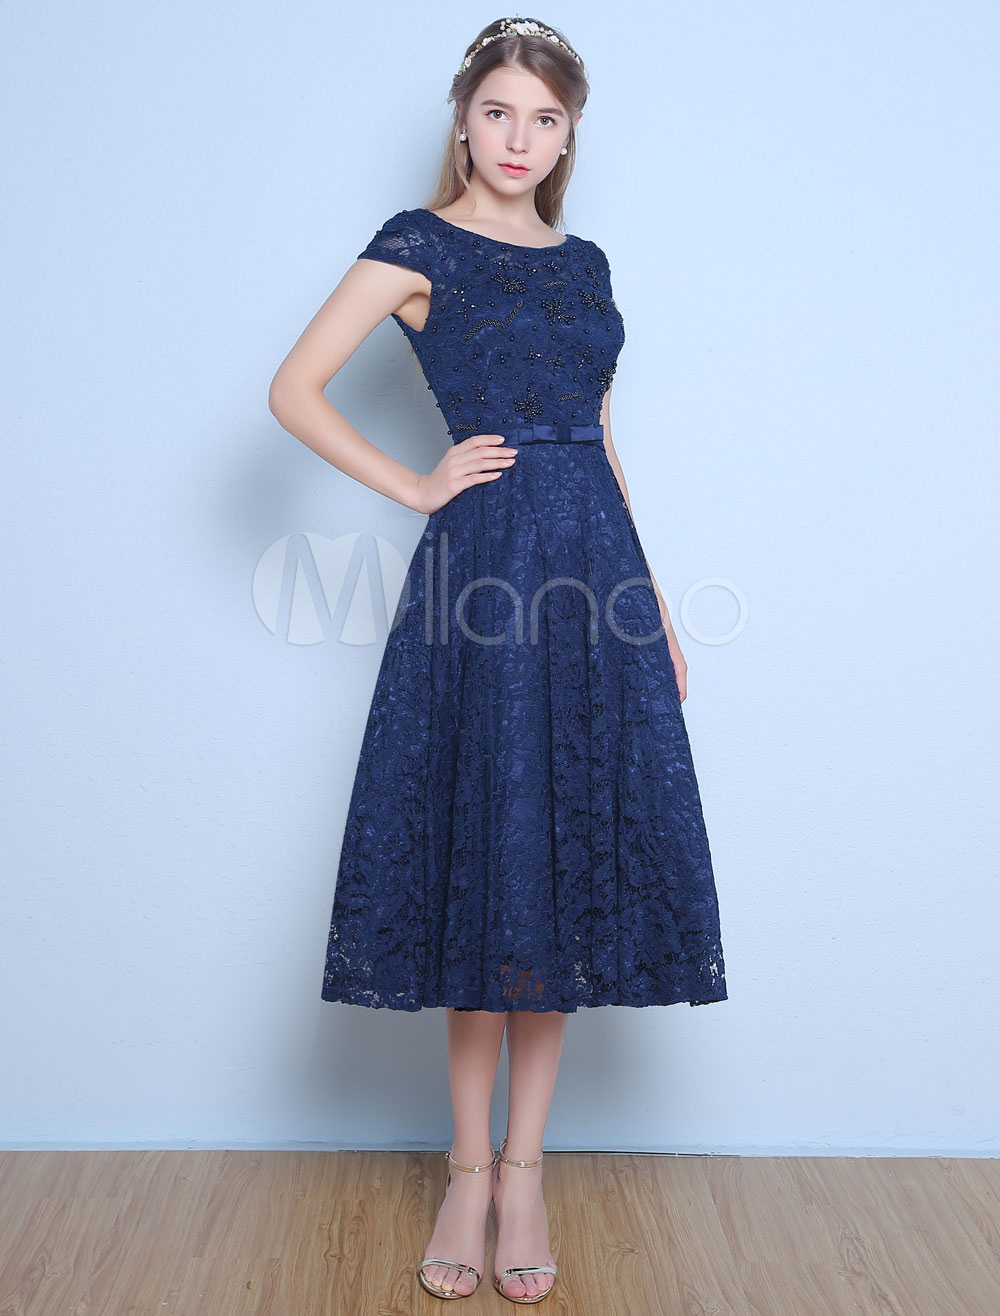 Buy Lace Cocktail Dresses Dark Navy Short Sleeve Prom Dress Beaded Bow Sash Tea Length Graduation Dress for $69.99 in Milanoo store